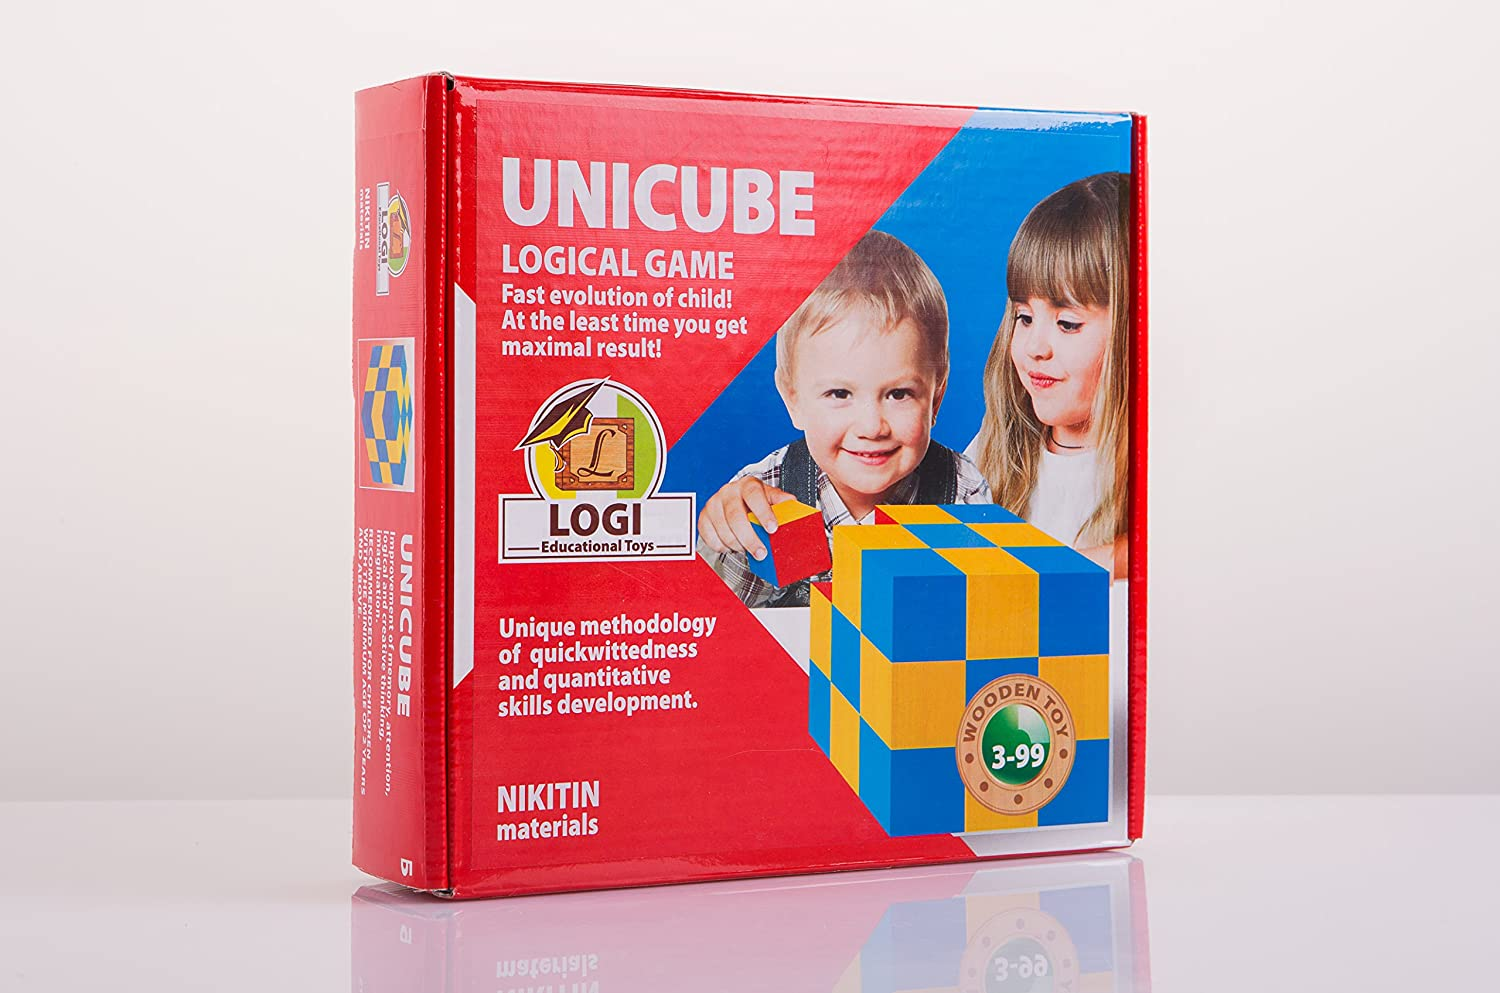 Wooden cubes UNICUBE learning toys training kids imrove three-dimensional space thinking pattern blocks help to reveal abilities wooden educational toys by Nikitin